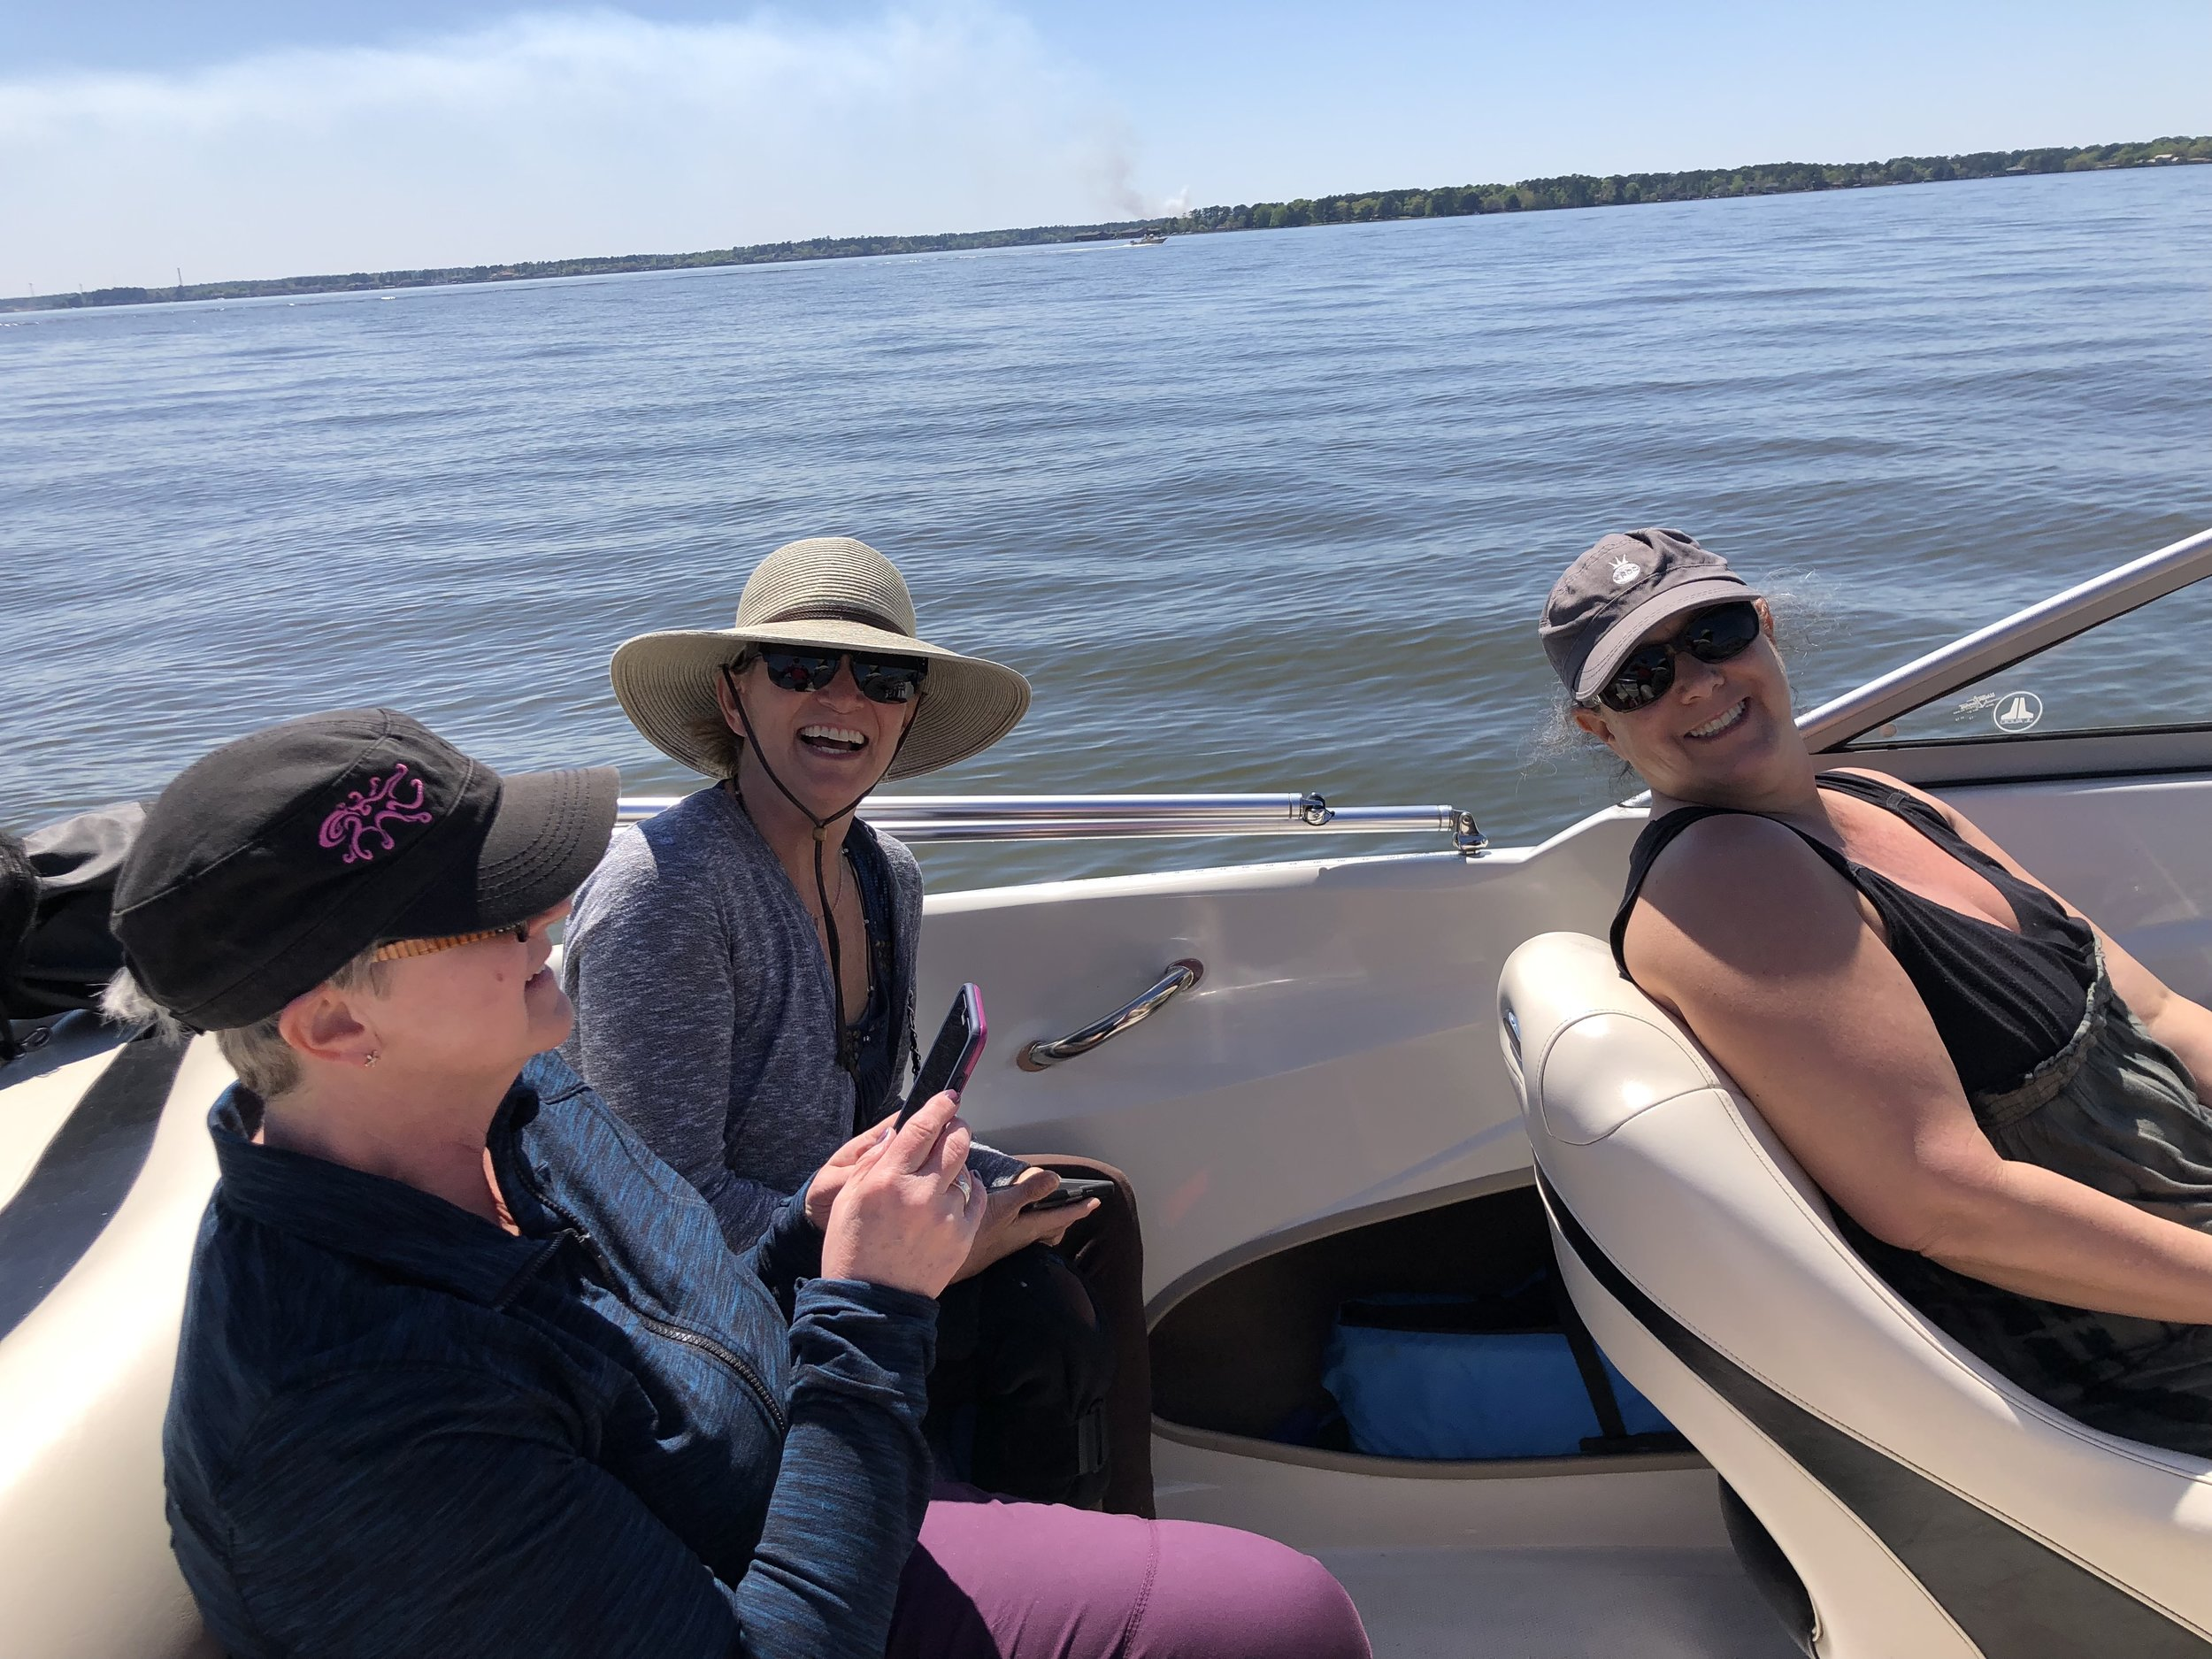 Boating on Lake Conroe helped some face fears!